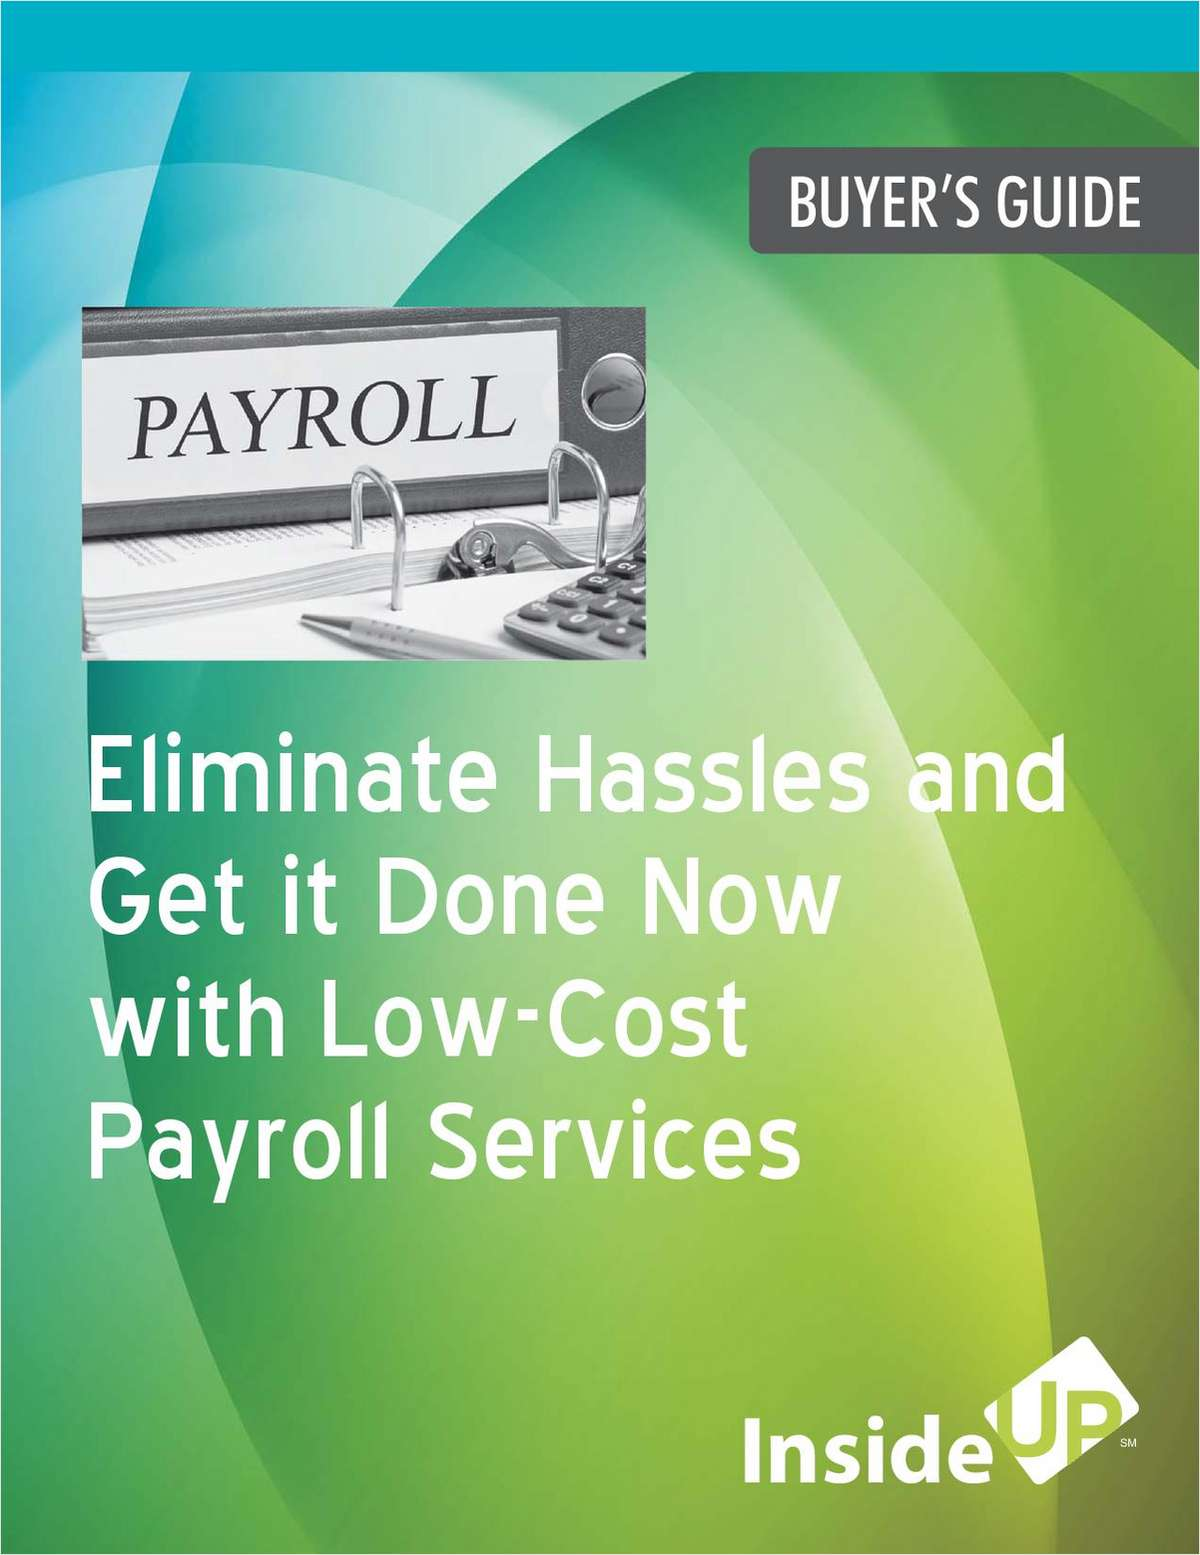 Eliminate Hassles and Get it Done Now with Low-Cost Payroll Services